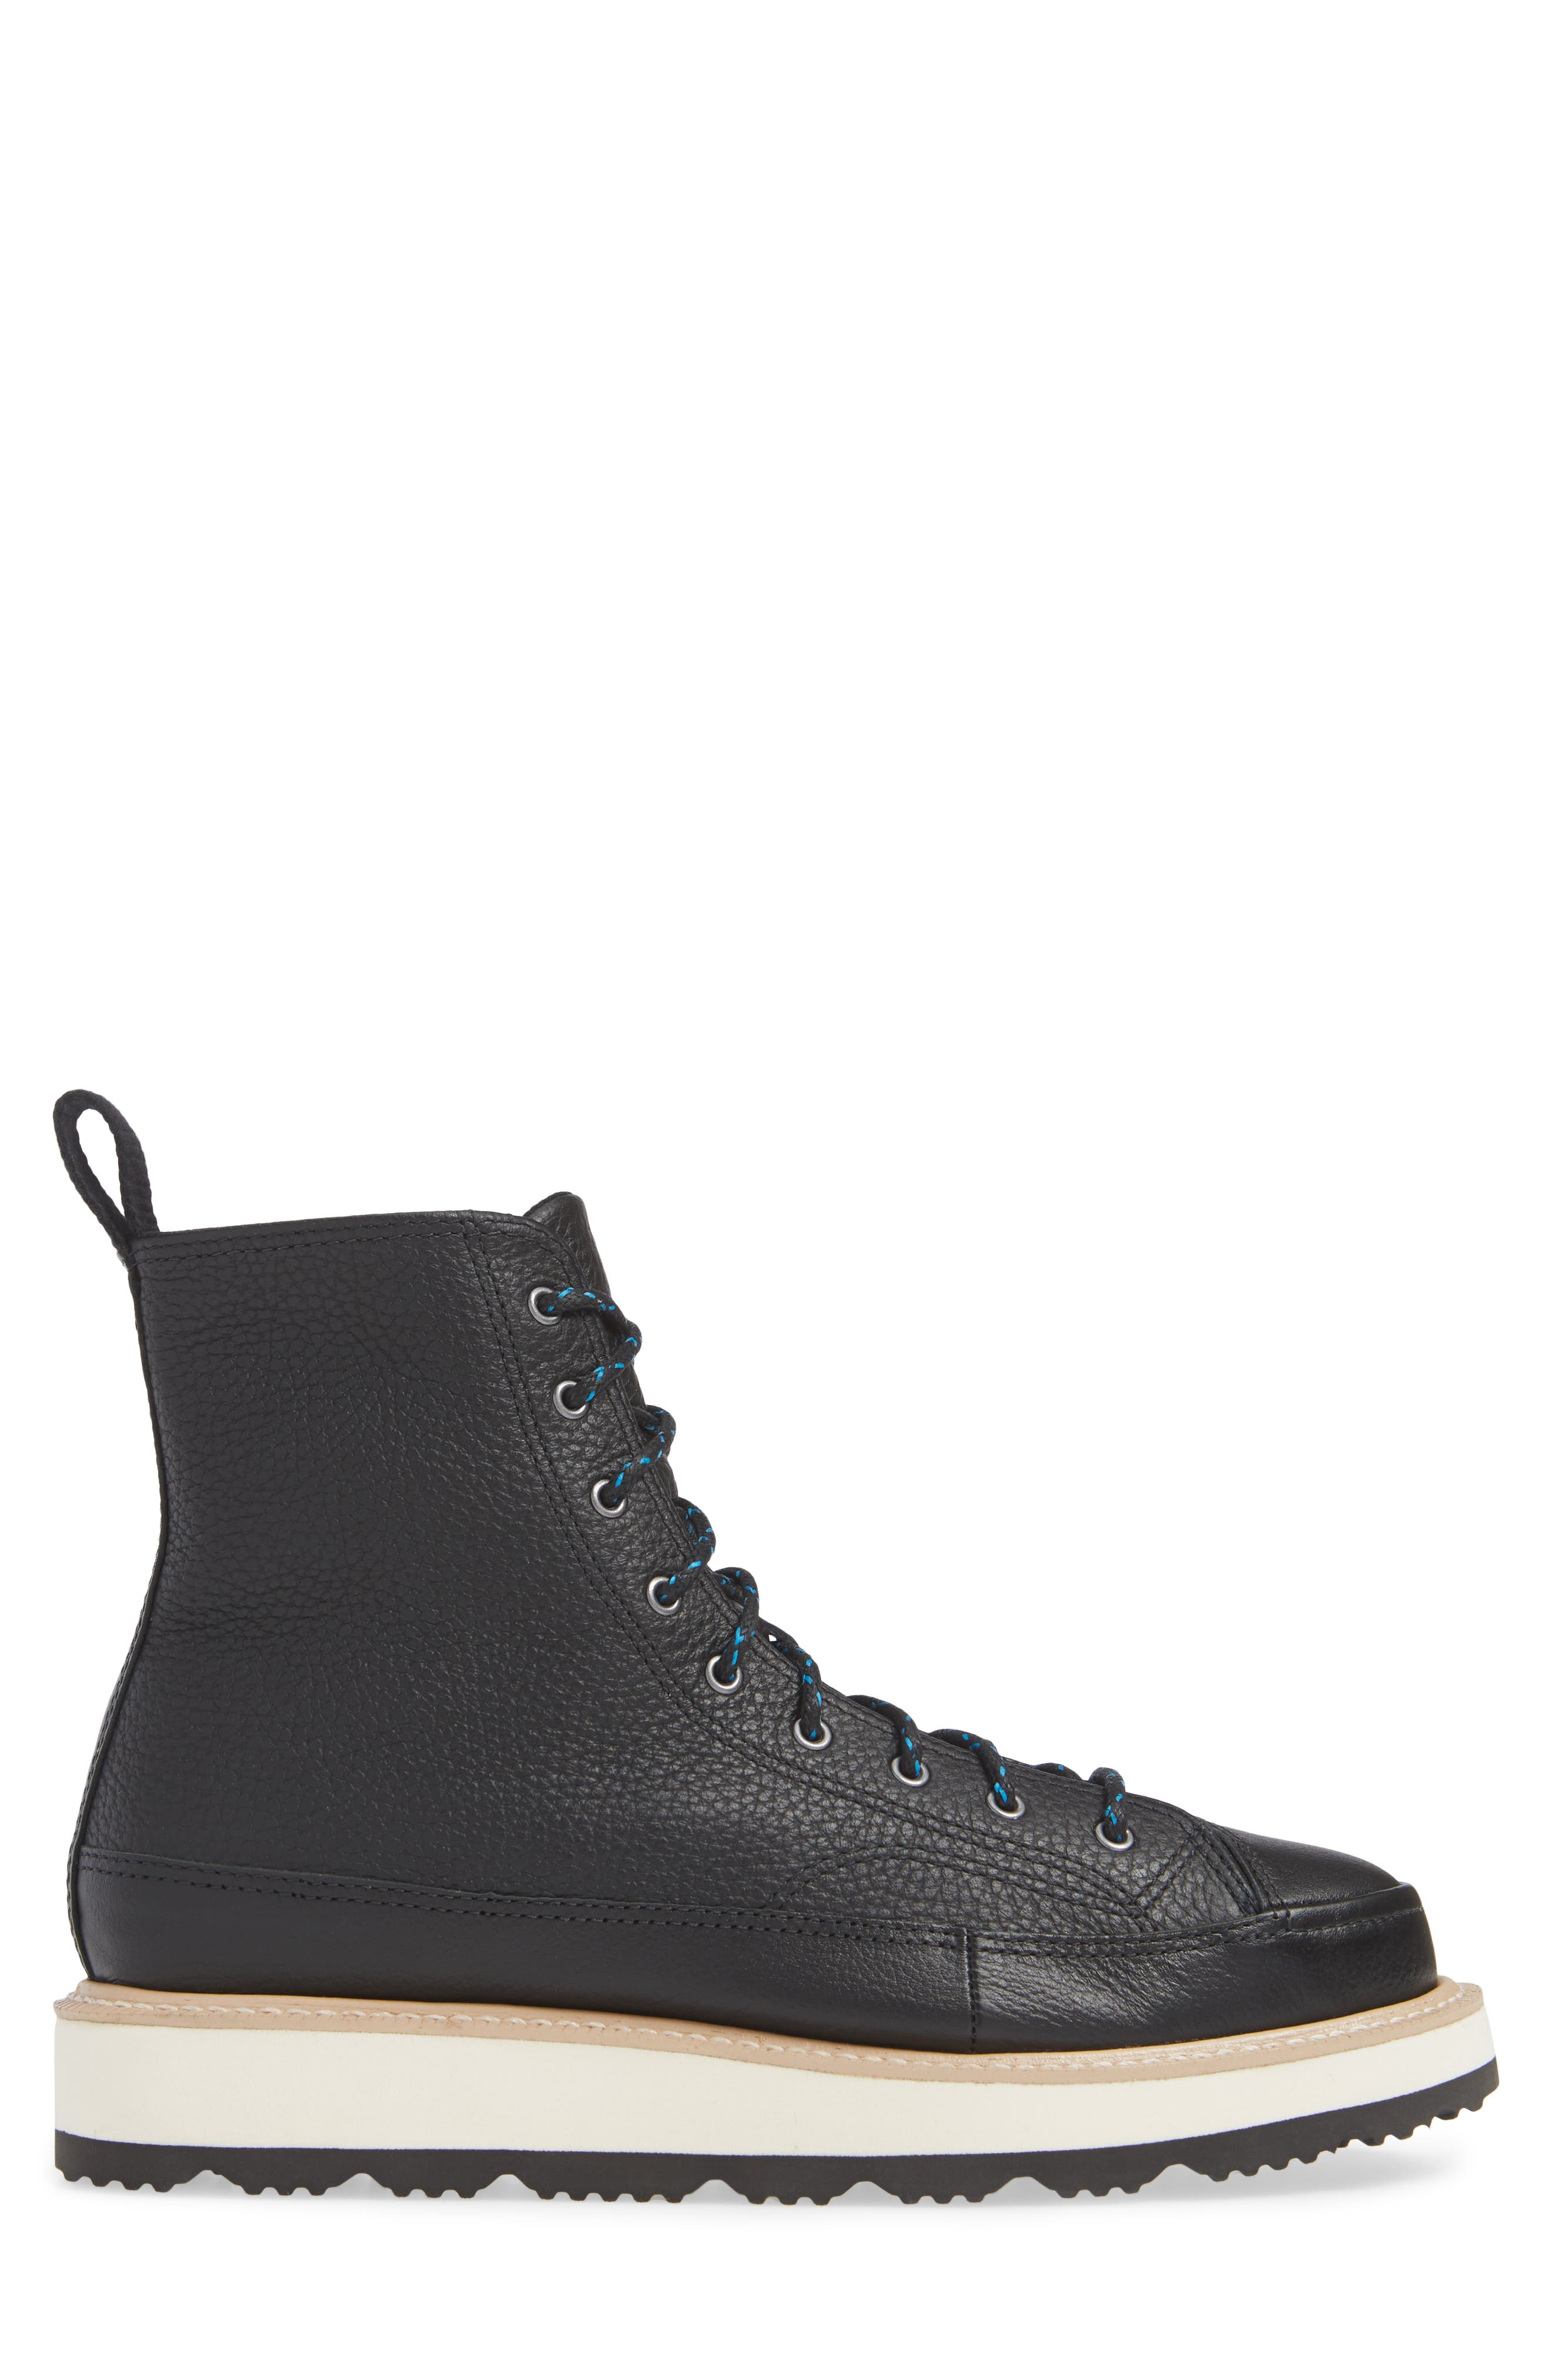 Chuck Taylor<sup>®</sup> Crafted Boot,                             Alternate thumbnail 3, color,                             BLACK/ LIGHT FAWN/ BLACK